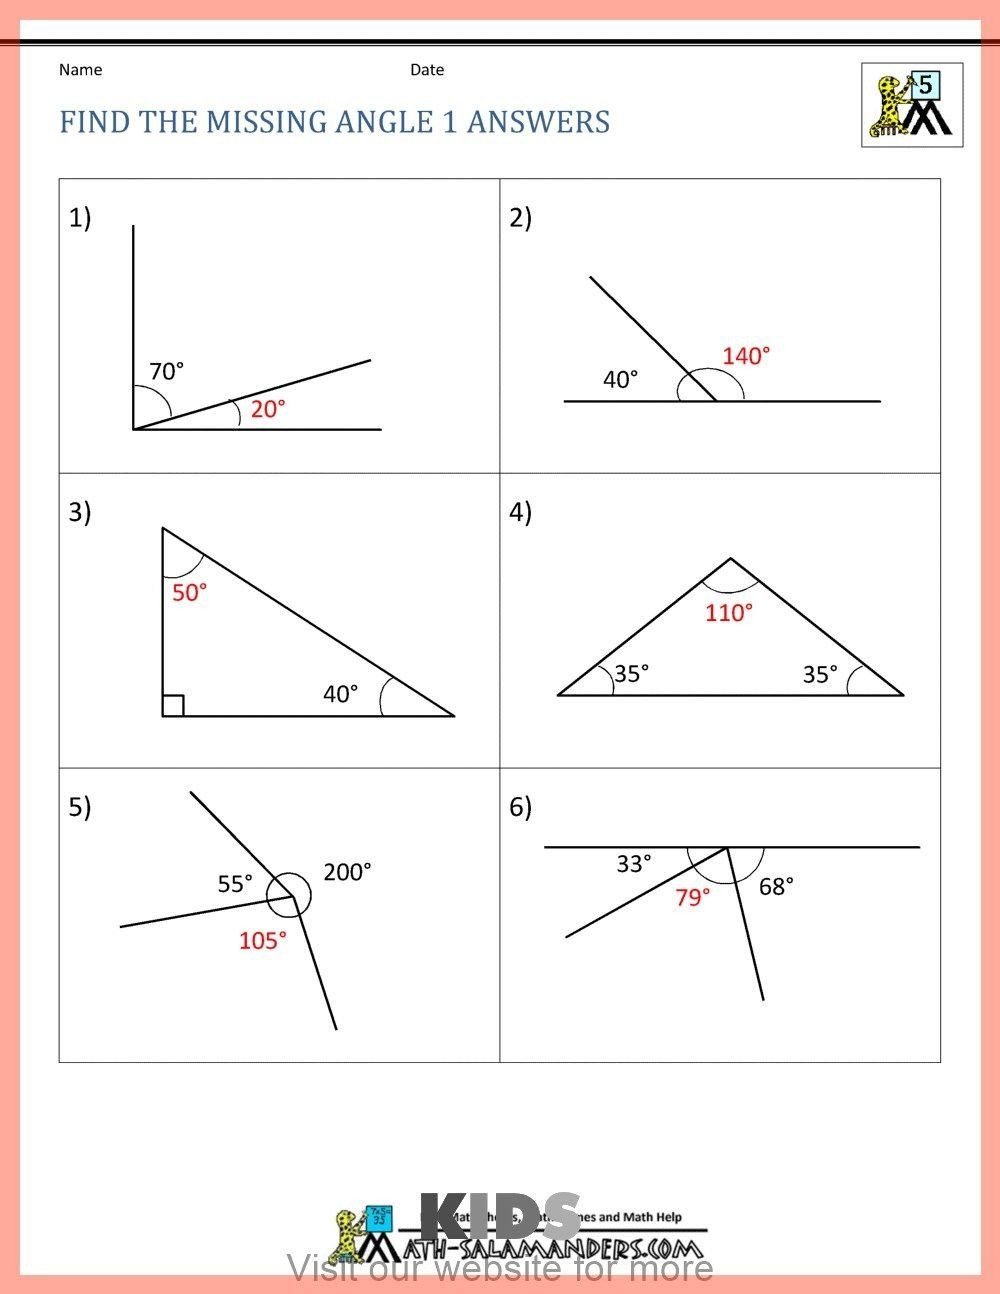 Work Energy And Power Worksheet Kids Activities Educational Craft For Kids Easy Easy Craf Angles Worksheet Finding Missing Angles Worksheet Geometry Worksheets